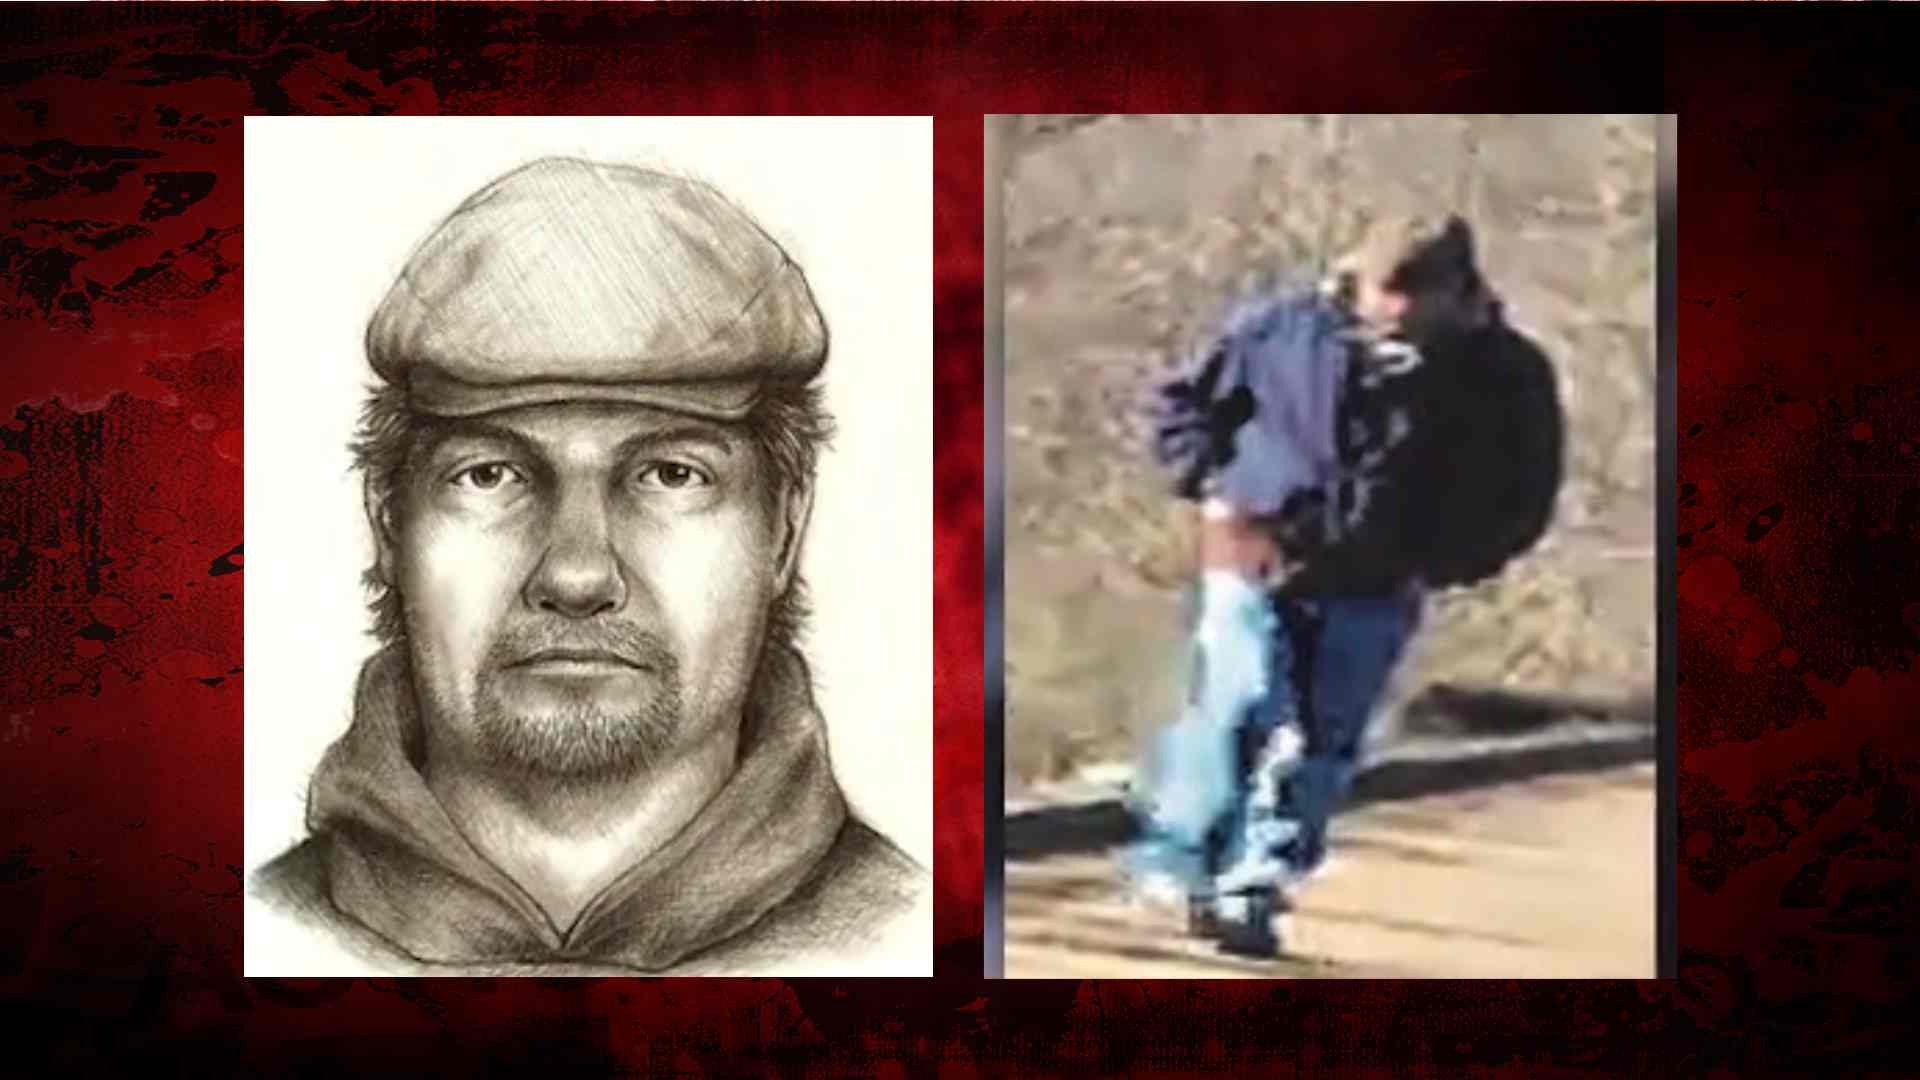 State police release drawing of suspect in Delphi killings